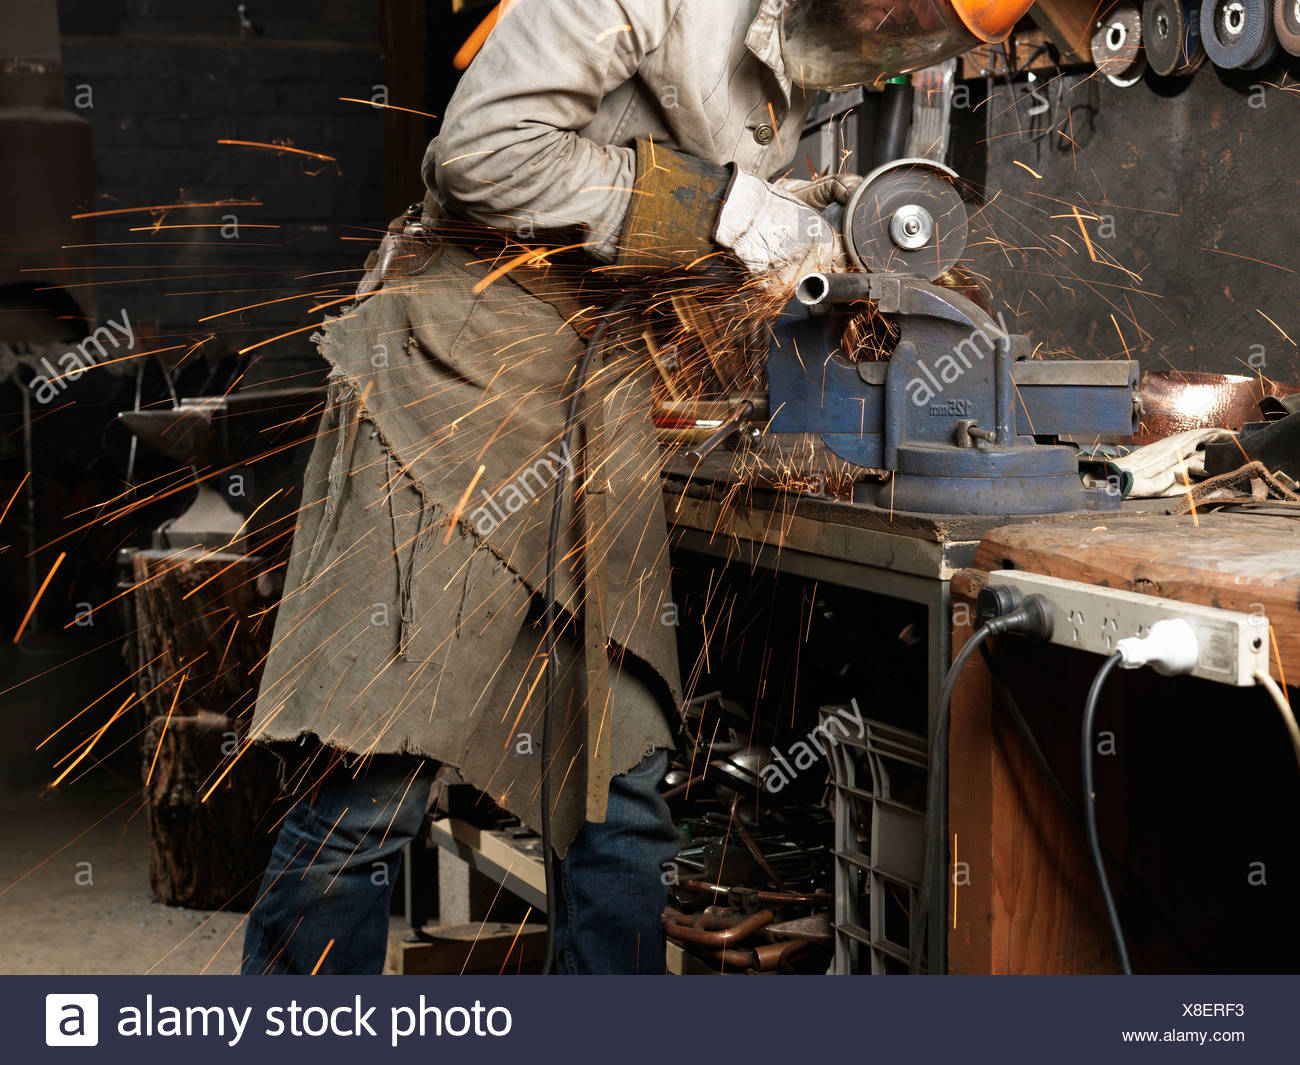 Blacksmith grinding metal on a machine in workshop - Stock Image